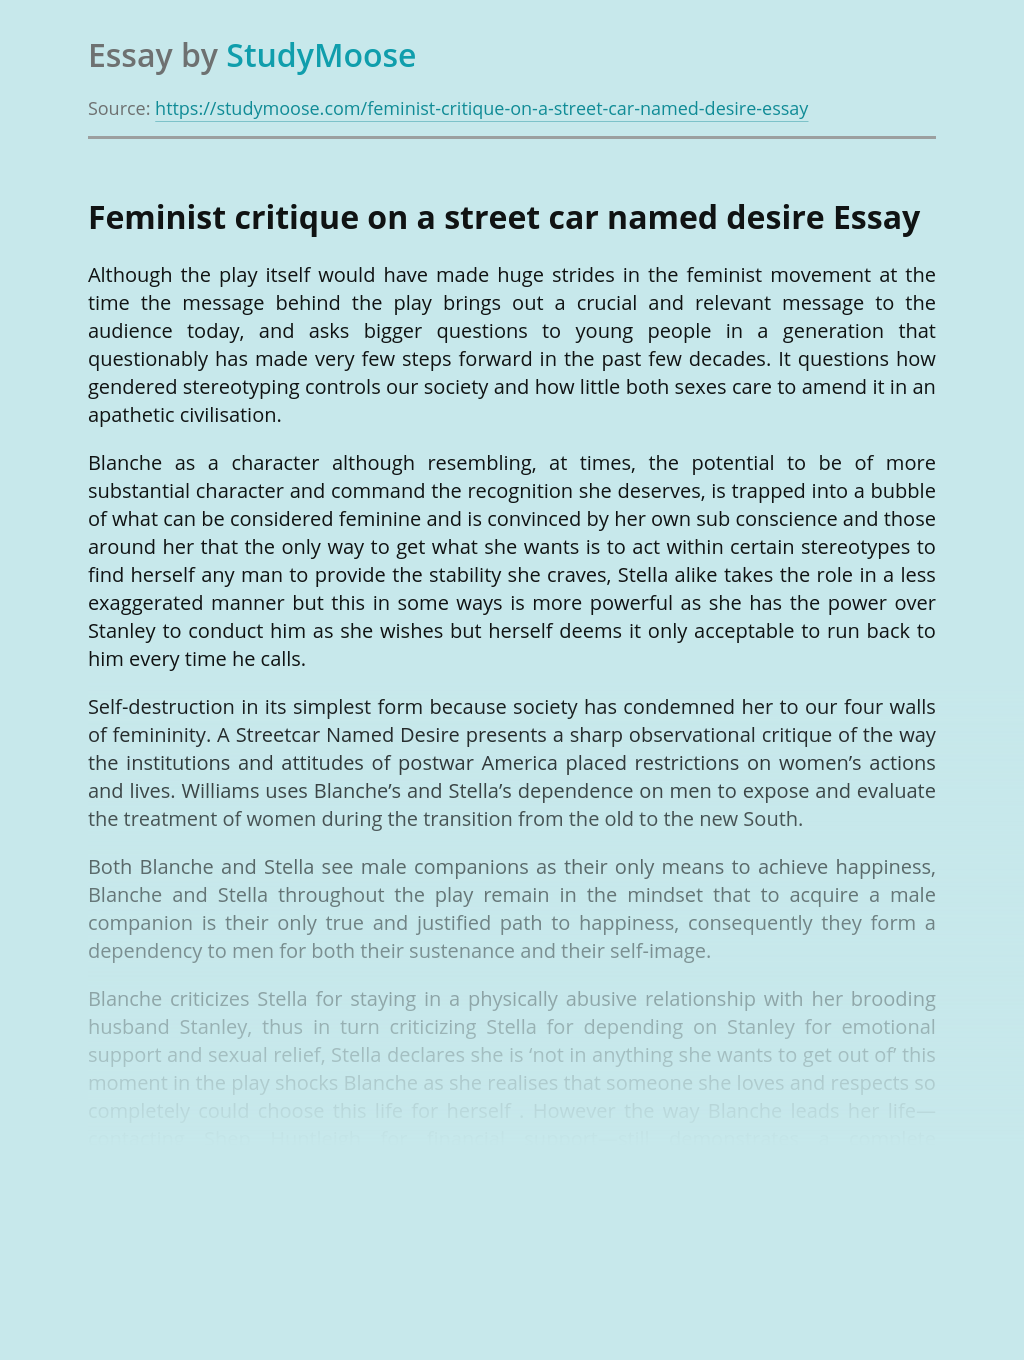 Feminist critique on a street car named desire